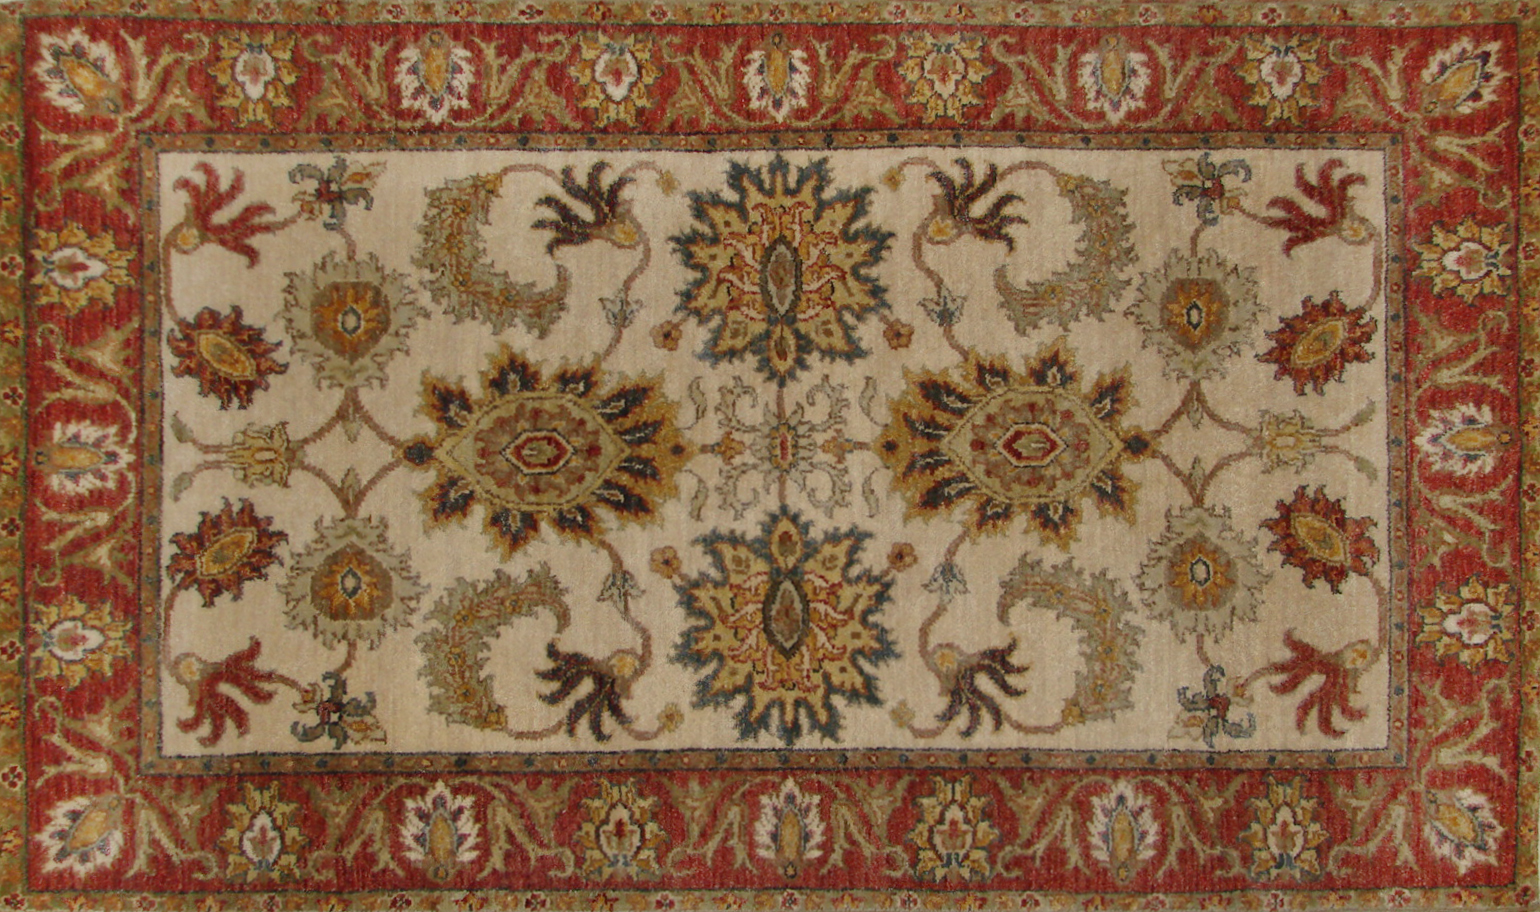 3x5 Traditional Hand Knotted Wool Area Rug - MR19659